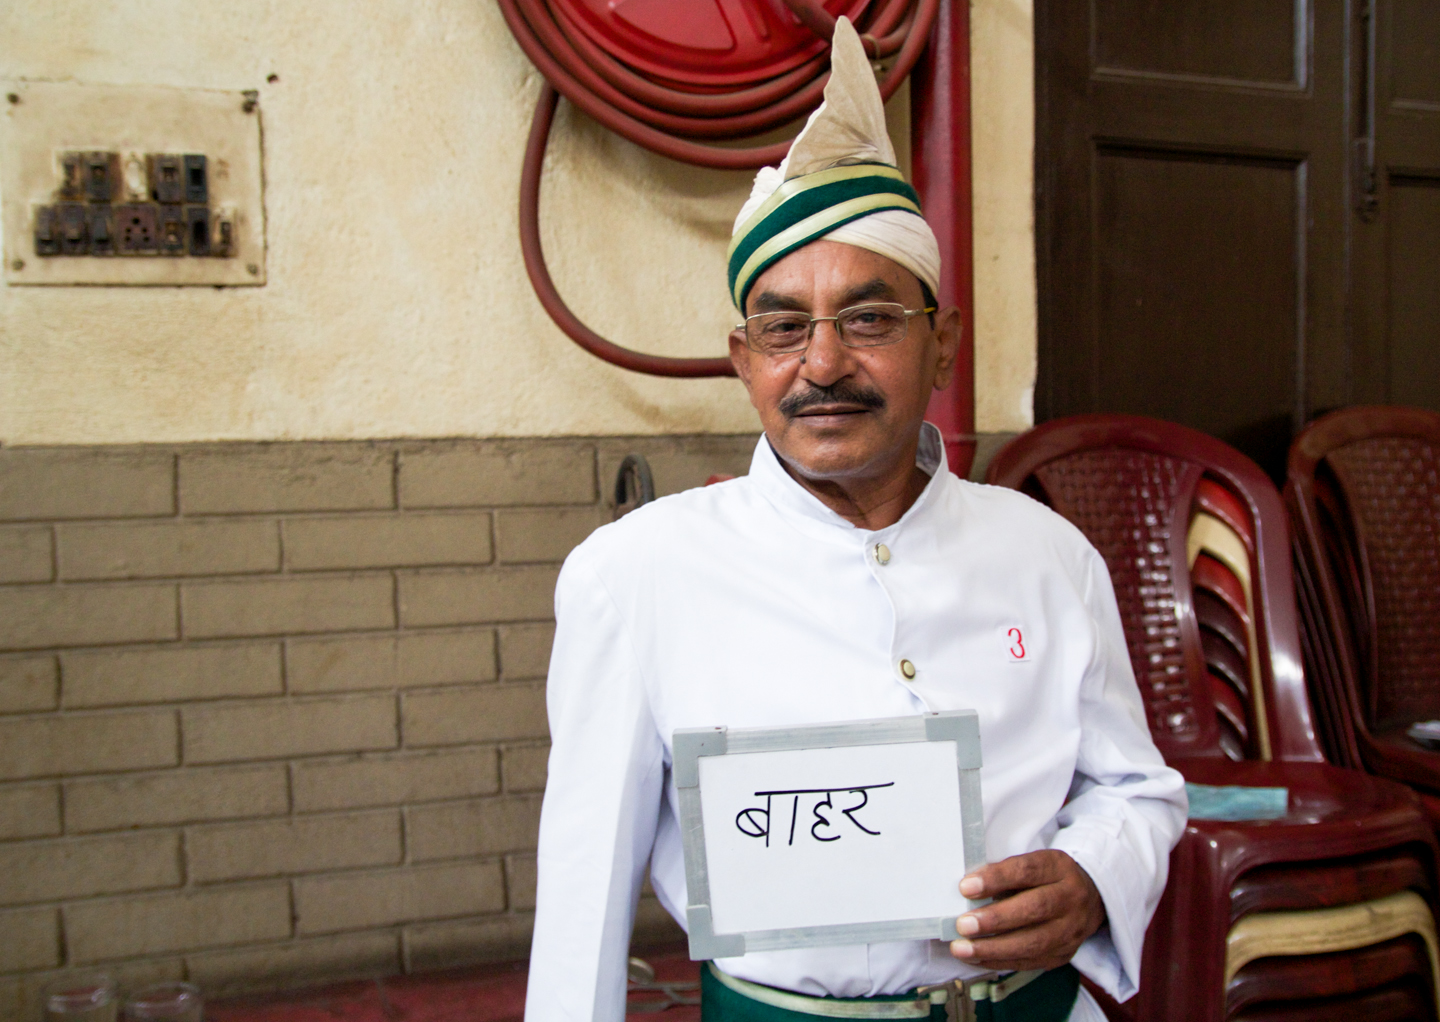 Mohammed Islam has been a waiter at Kolkata's Indian Coffee House for 34 years. Tea isn't on the menu at this famed institution run by the Indian Coffee Workers Co-Operative Society, so he takes breaks at the chai stand outside.